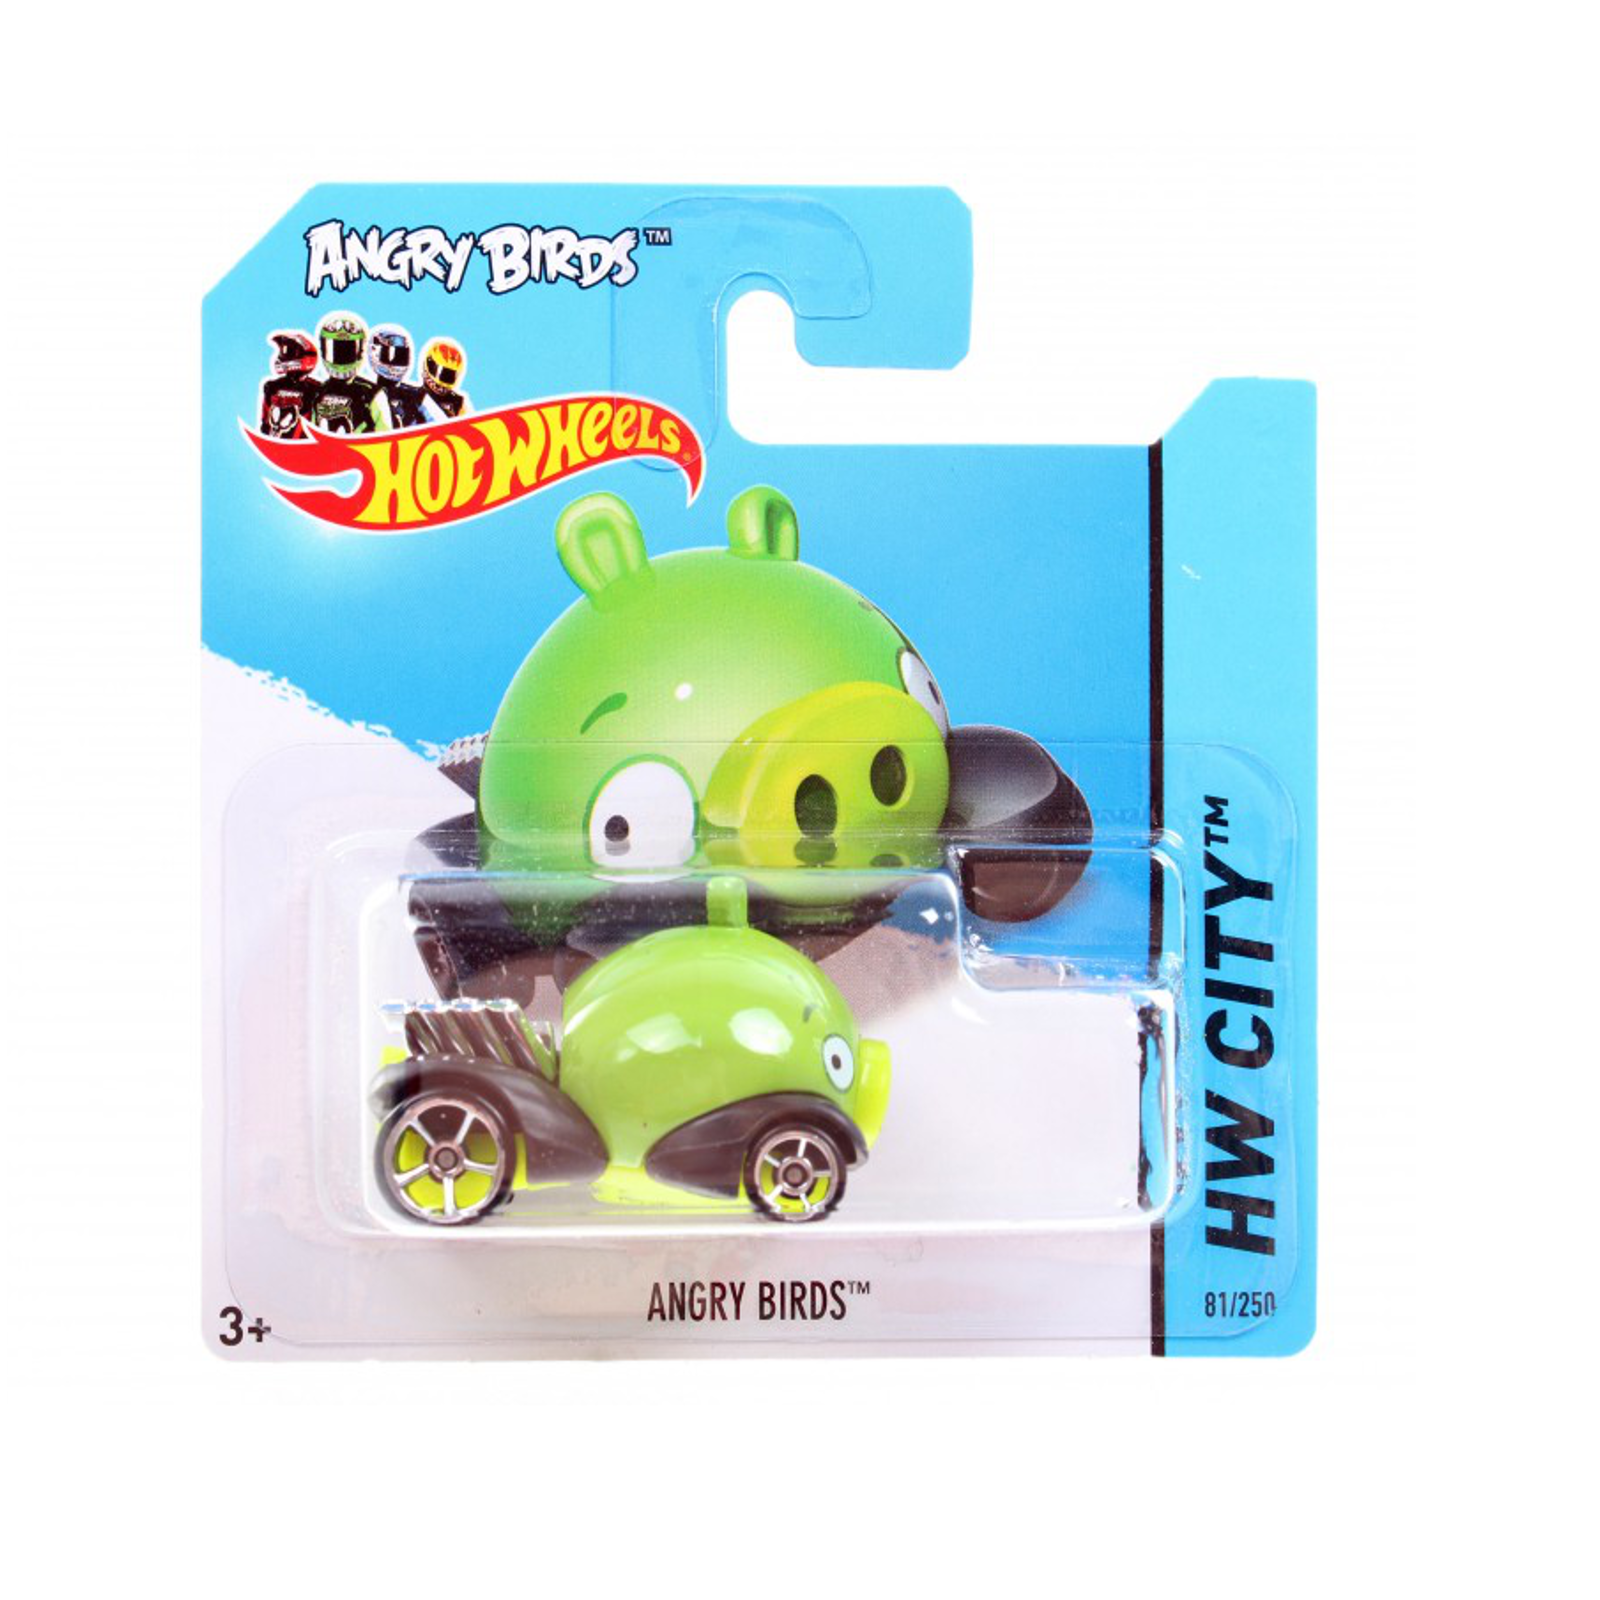 ����������� Hot Wheels ��� ������ Angry Birds (81)